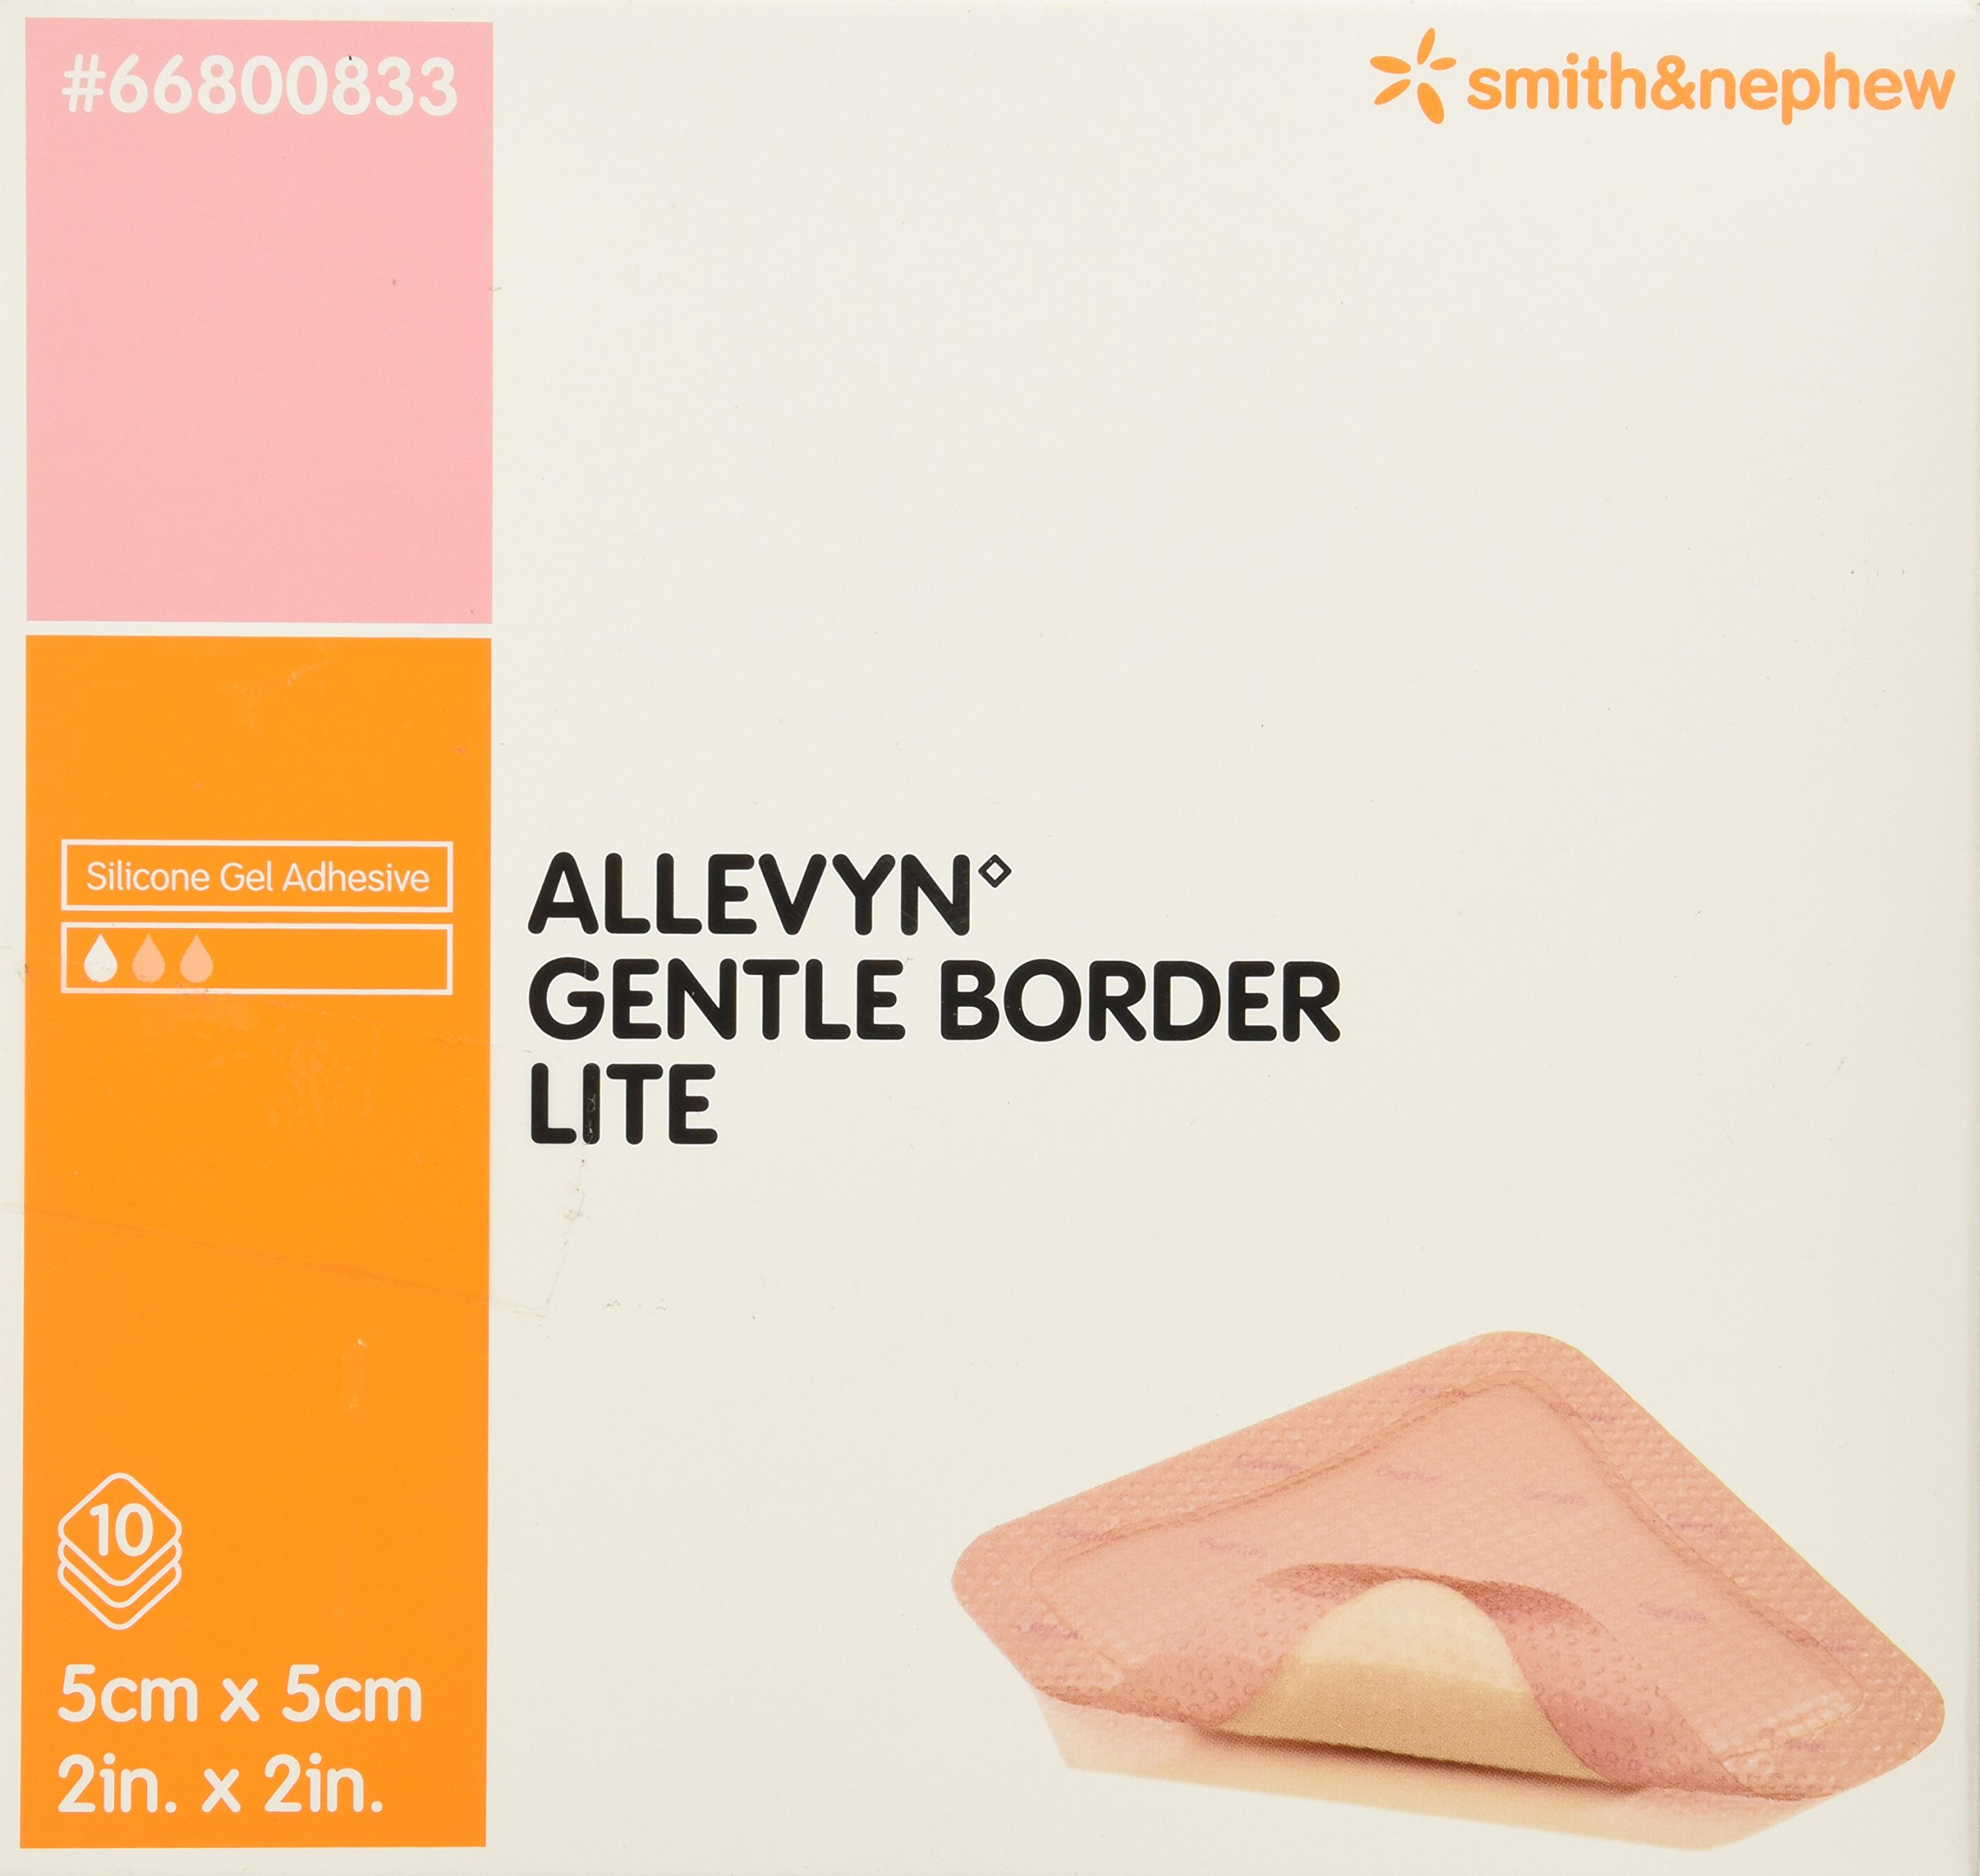 Smith & Nephew Foam Dressing Allevyn Gentle Border Lite 2 X 2 Inch Square Adhesive Sterile #66800833, Box of 10 by Allevyn